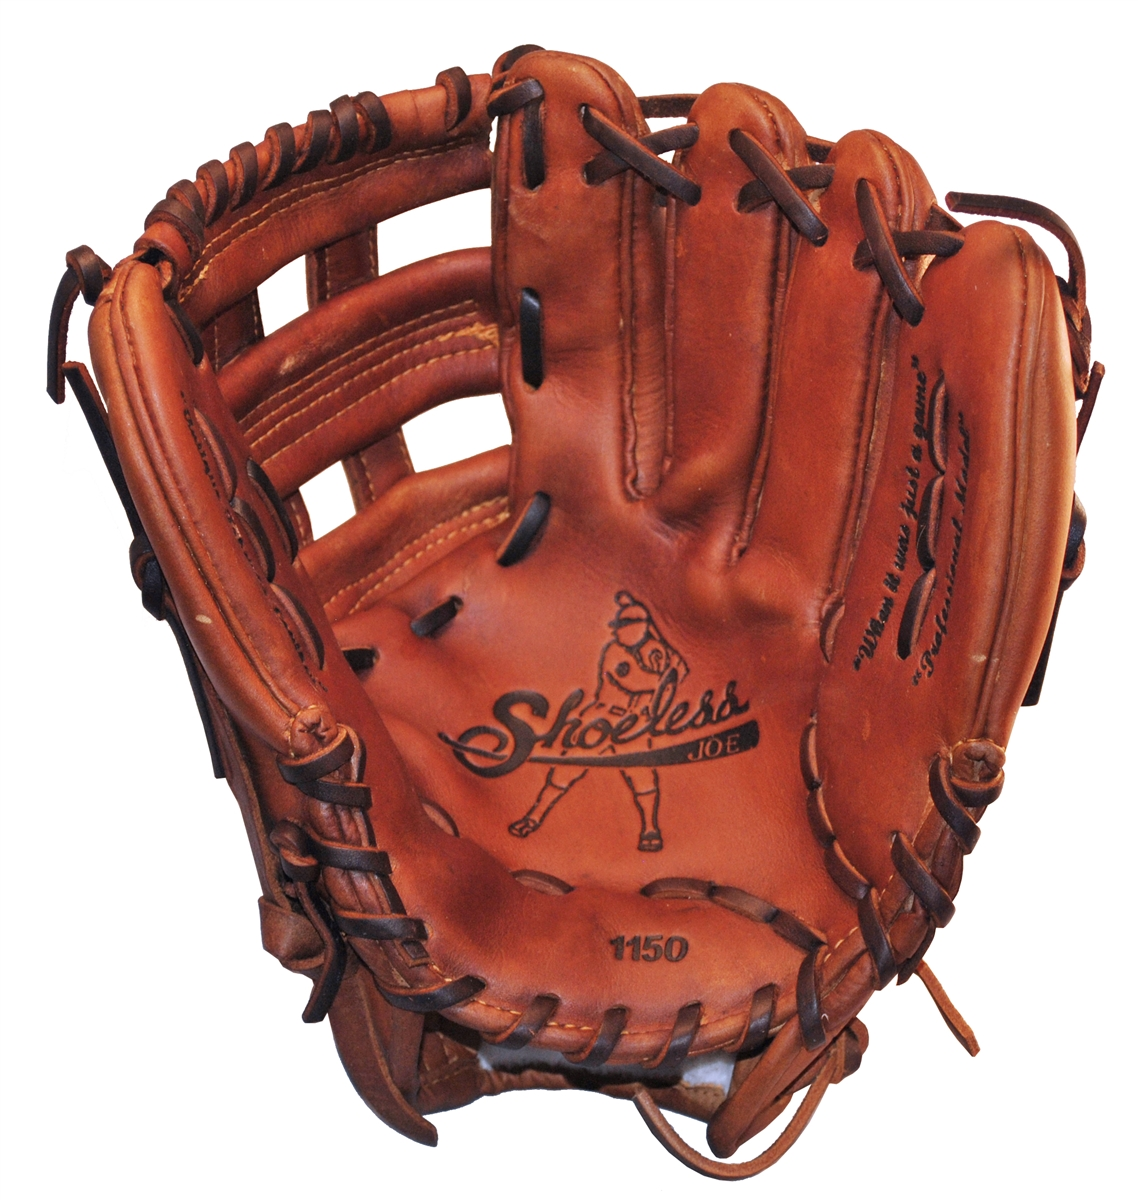 Four new baseball gloves made available today by Vinci Pro from the brand new Optimus series. Vinci's best gloves yet!